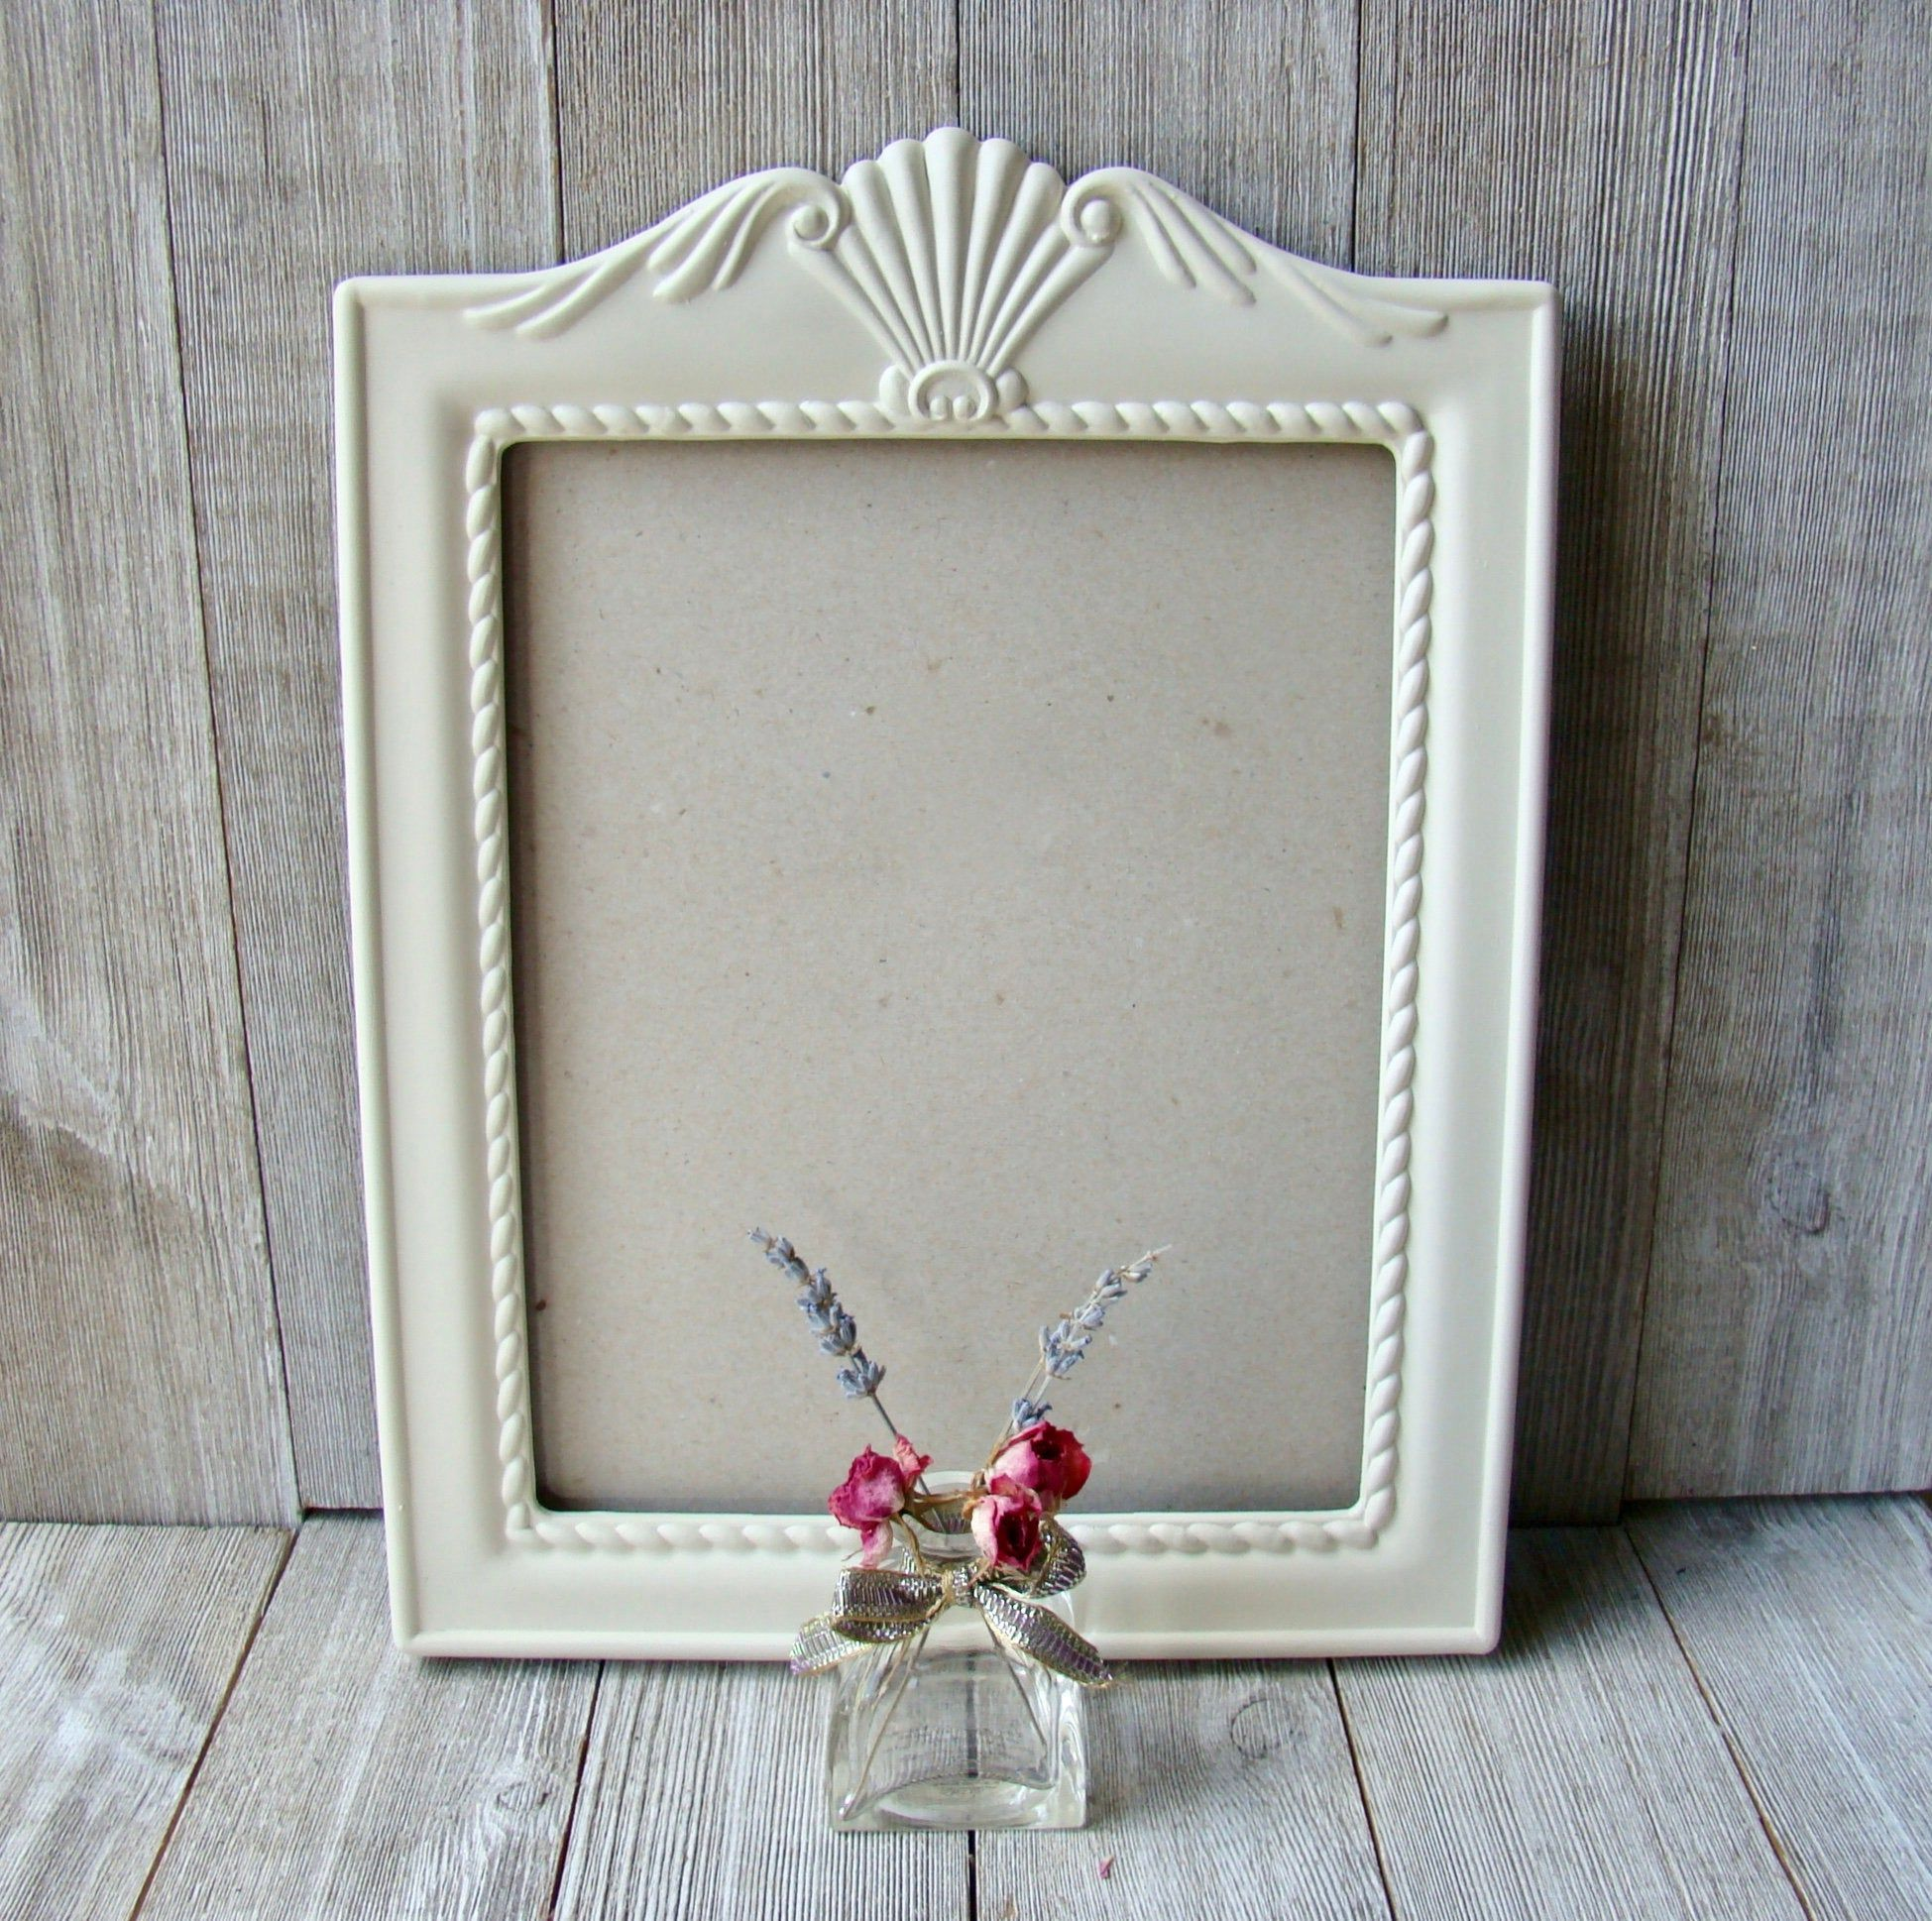 Vintage 8 X 10 Ornate White Picture Frame In 2020 White Picture Frames Distressed Picture Frames White Distressed Frame